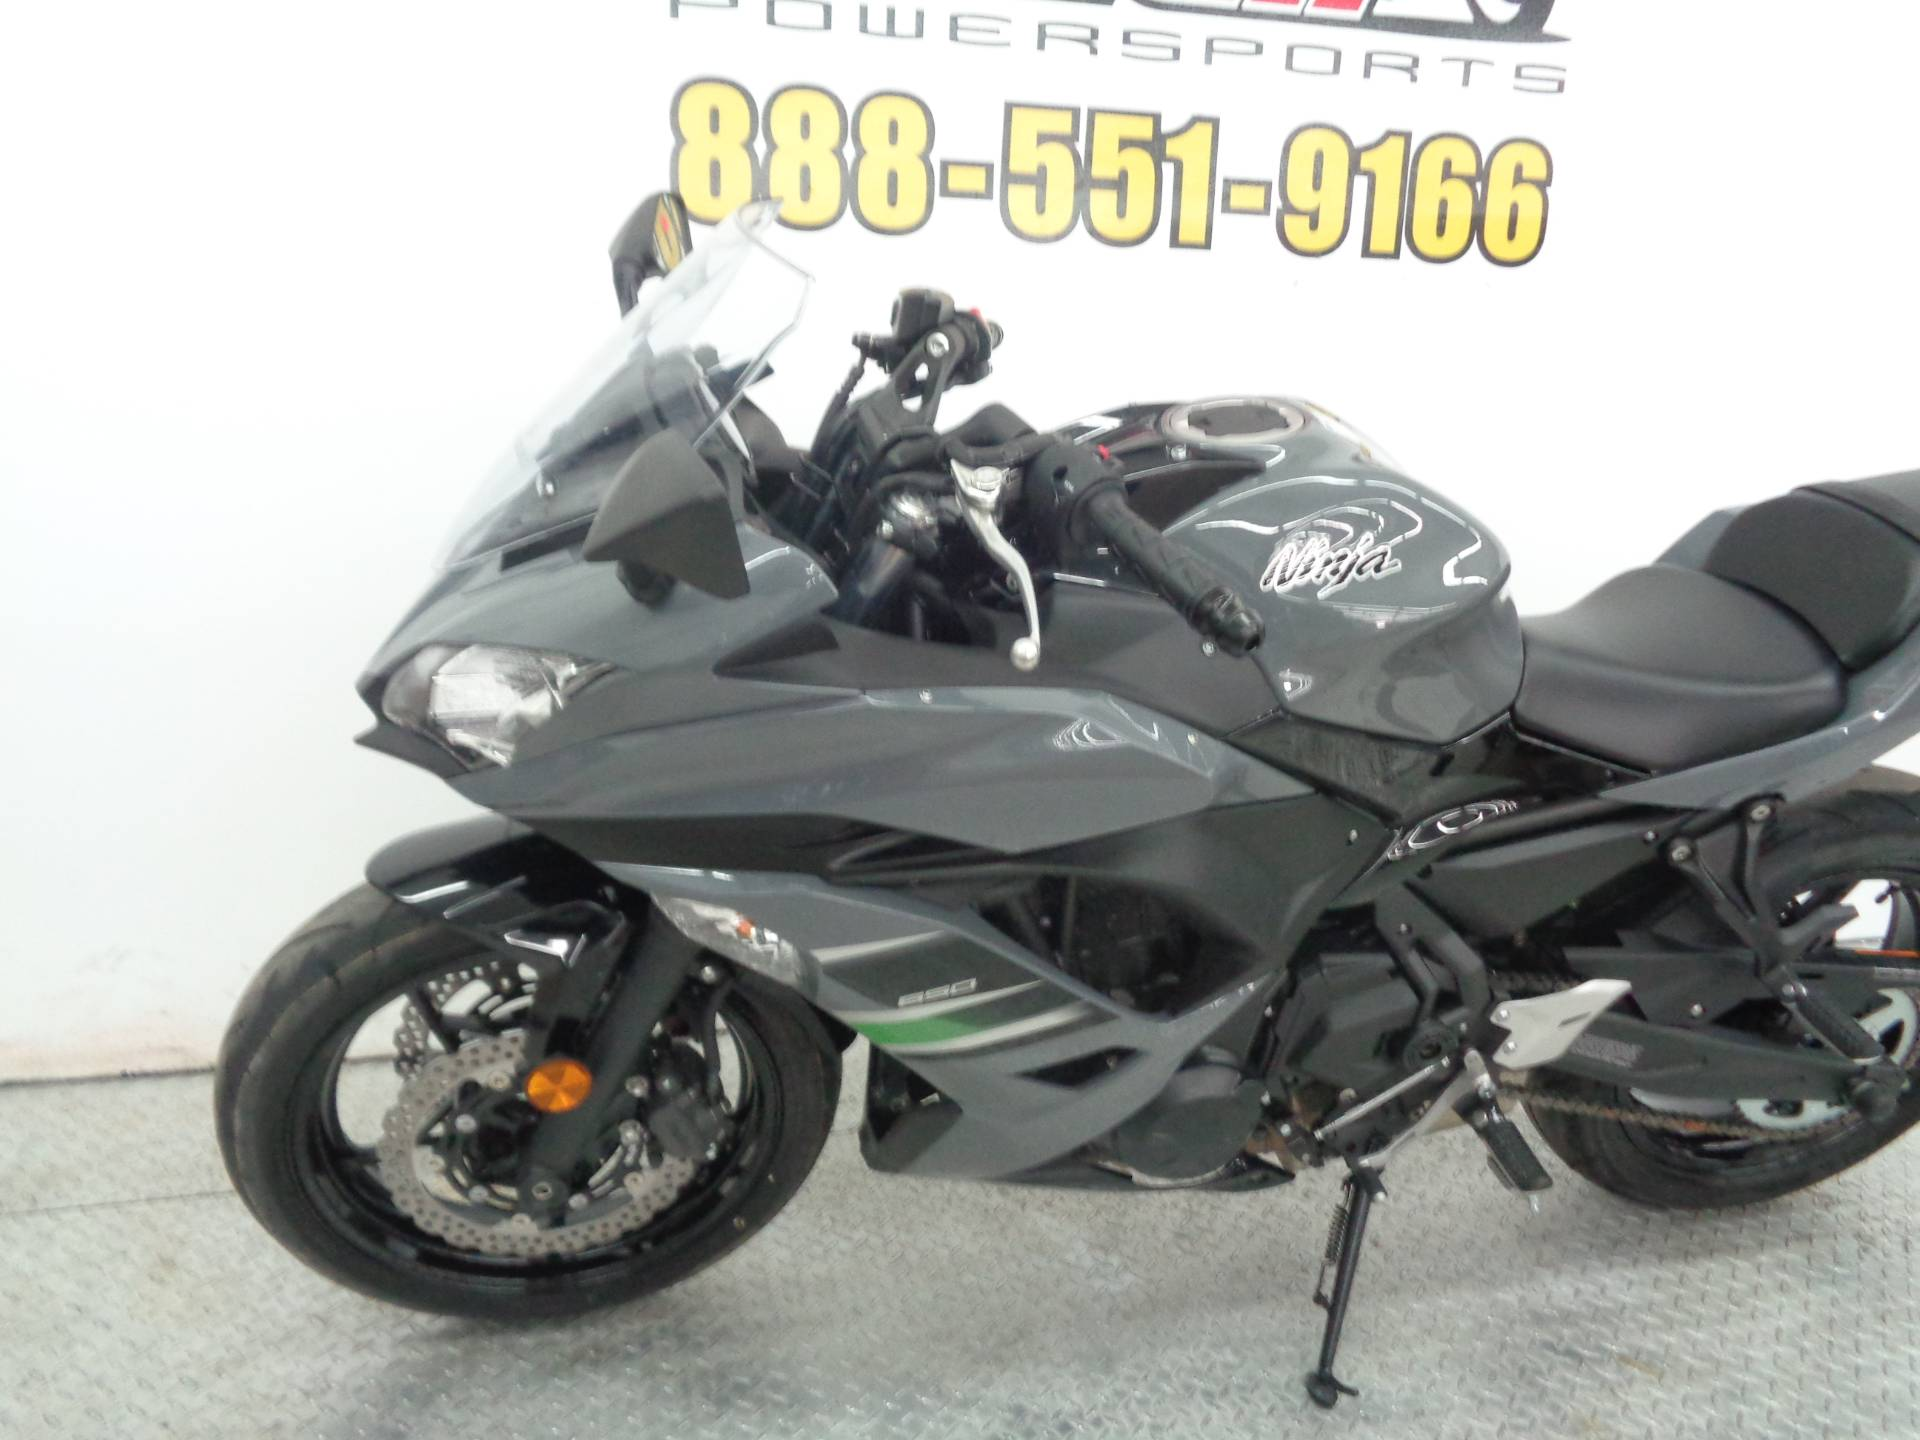 2018 Kawasaki Ninja 650 in Tulsa, Oklahoma - Photo 6